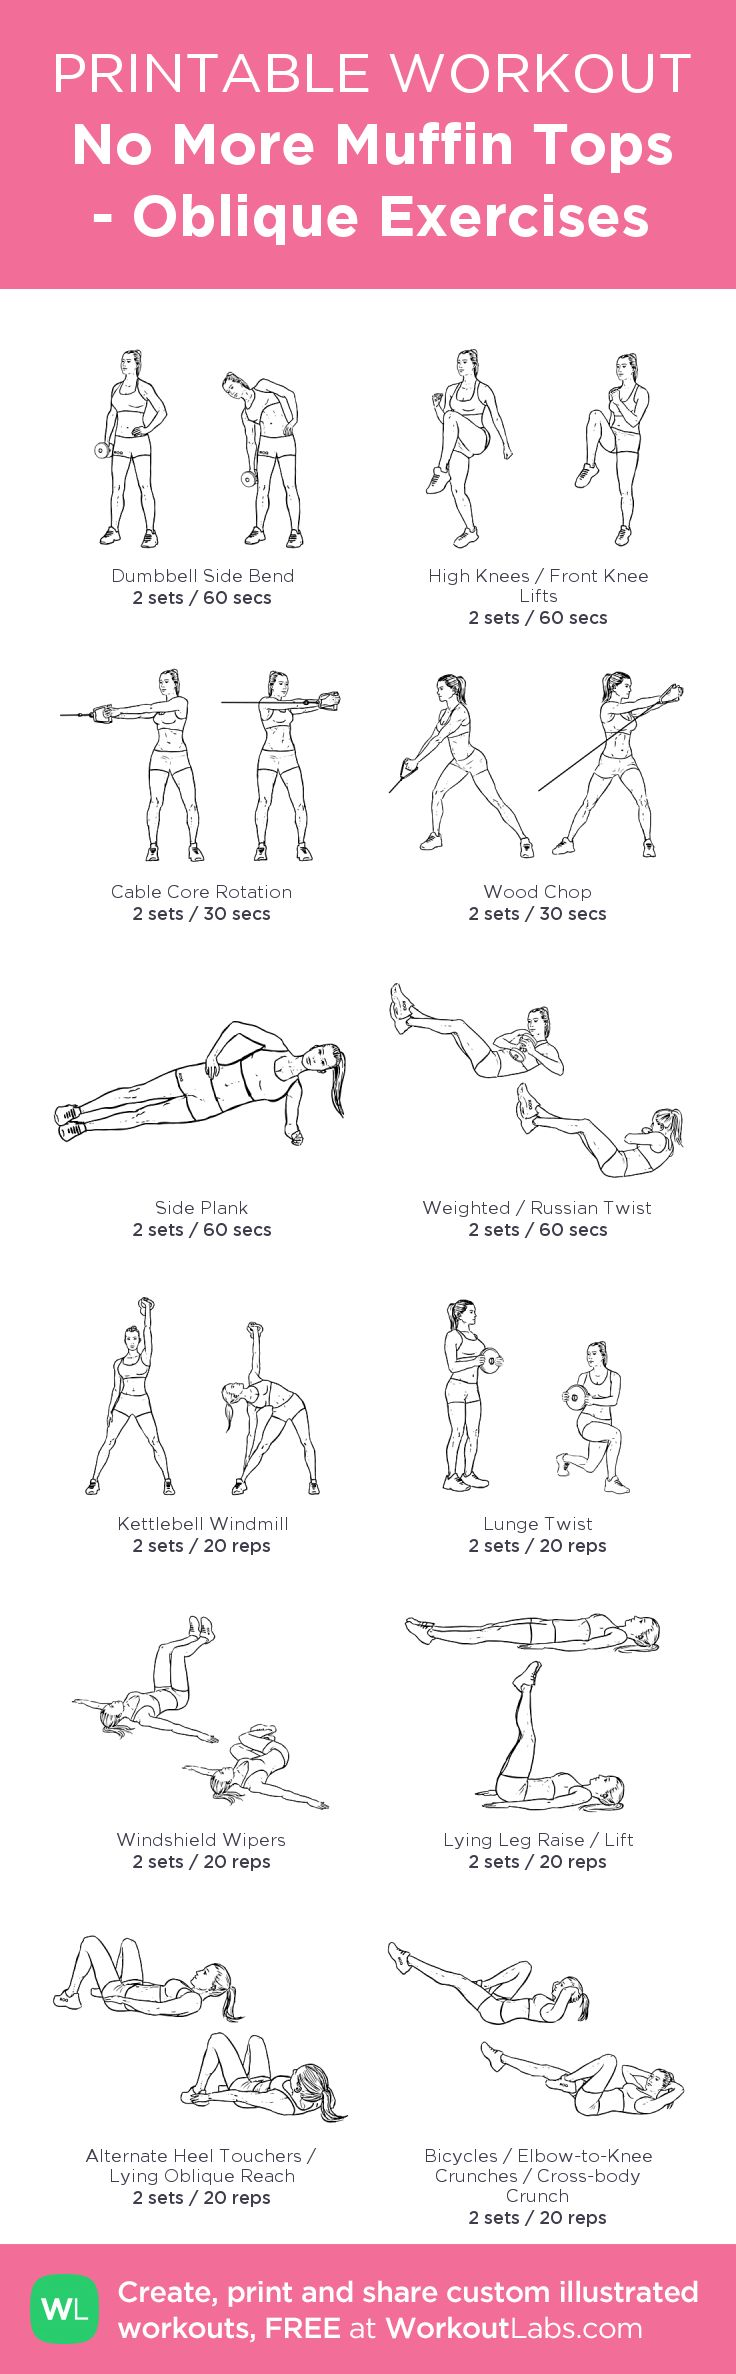 No More Muffin Tops - Oblique Exercises: my visual workout created at WorkoutLabs.com • Click through to customize and download as a FREE PDF! #customworkout